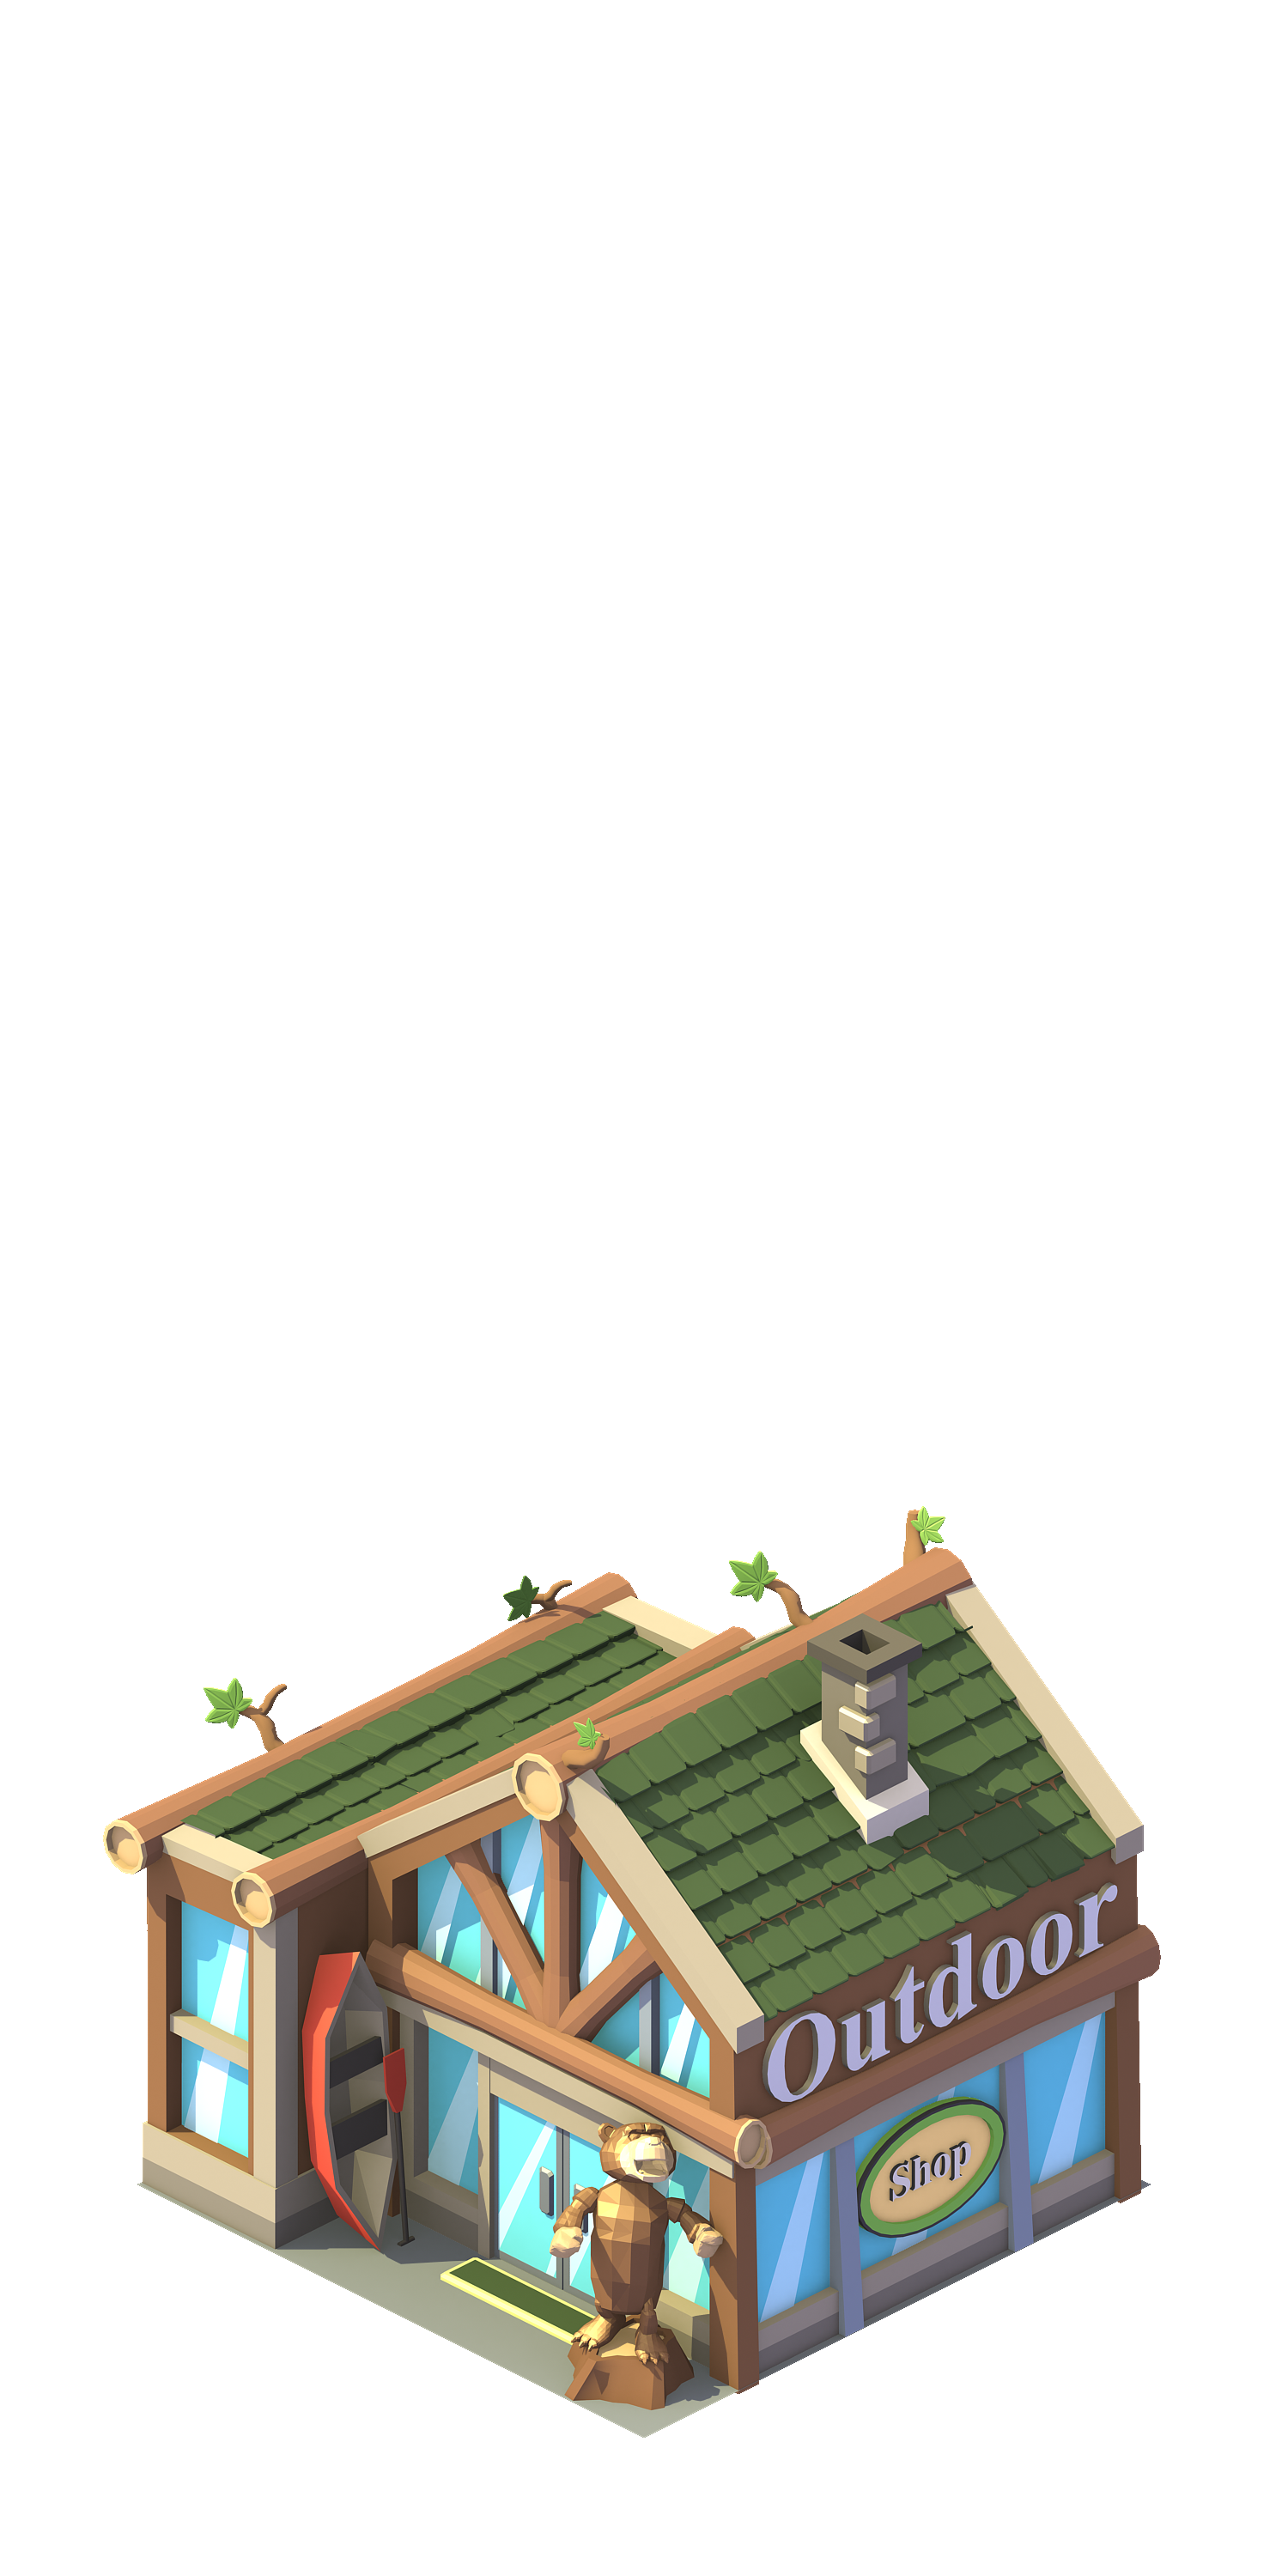 outdoor_store.png